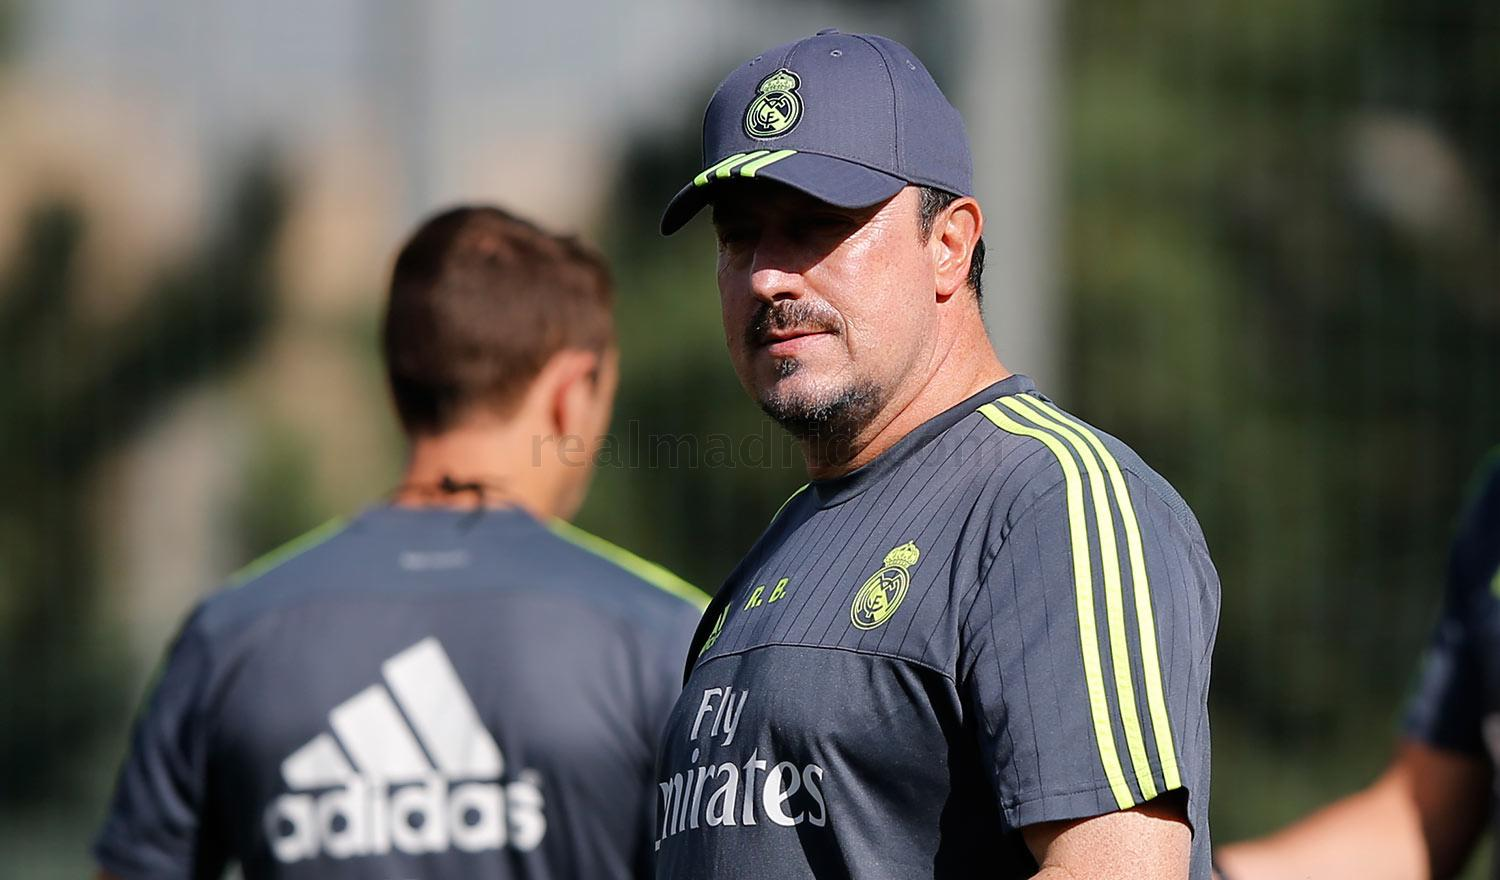 Real Madrid - Entrenamiento del Real Madrid - 12-08-2015